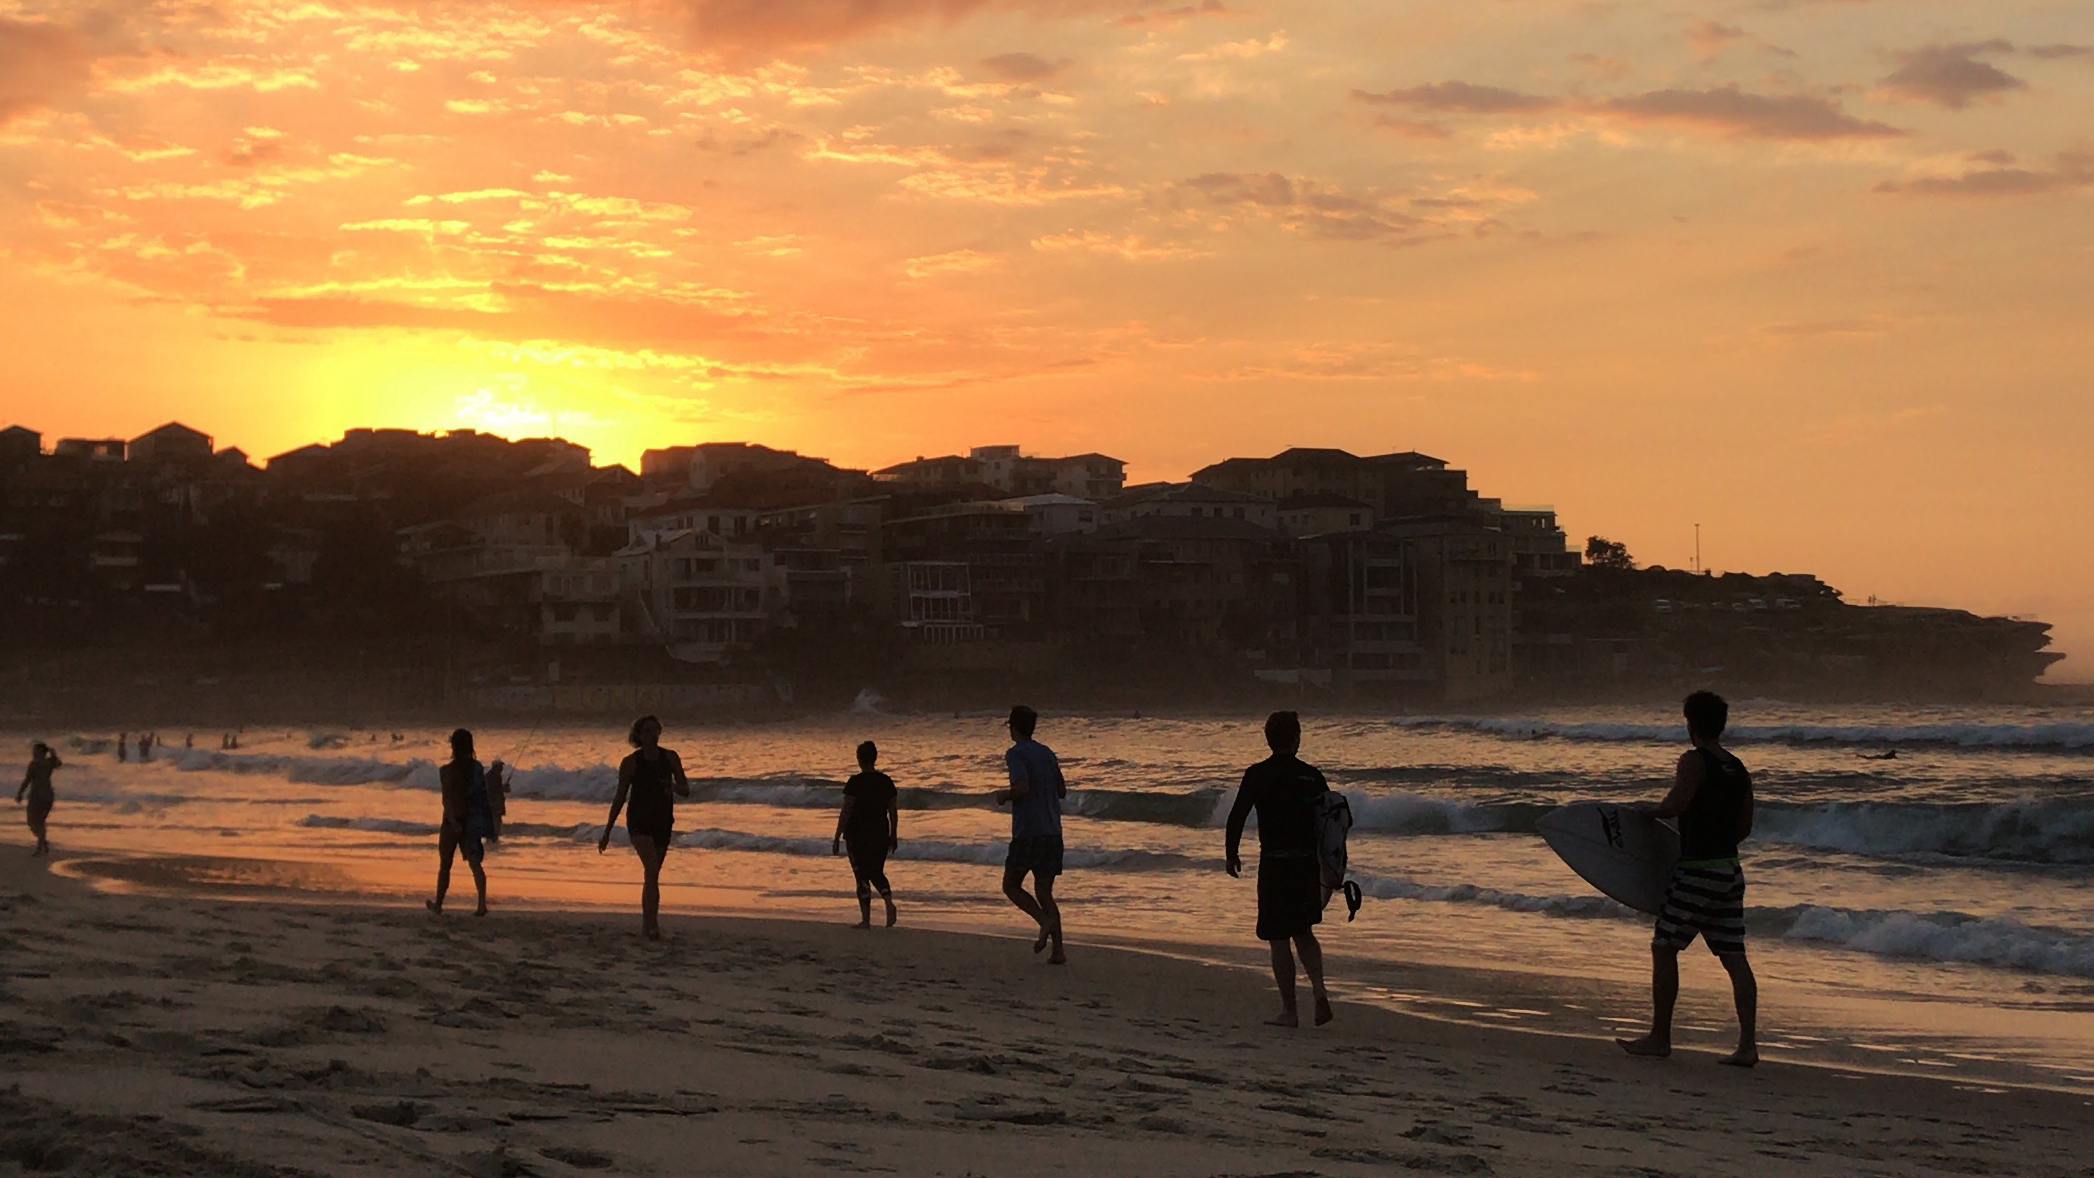 Bondi-surfers-dawn-crop.jpg